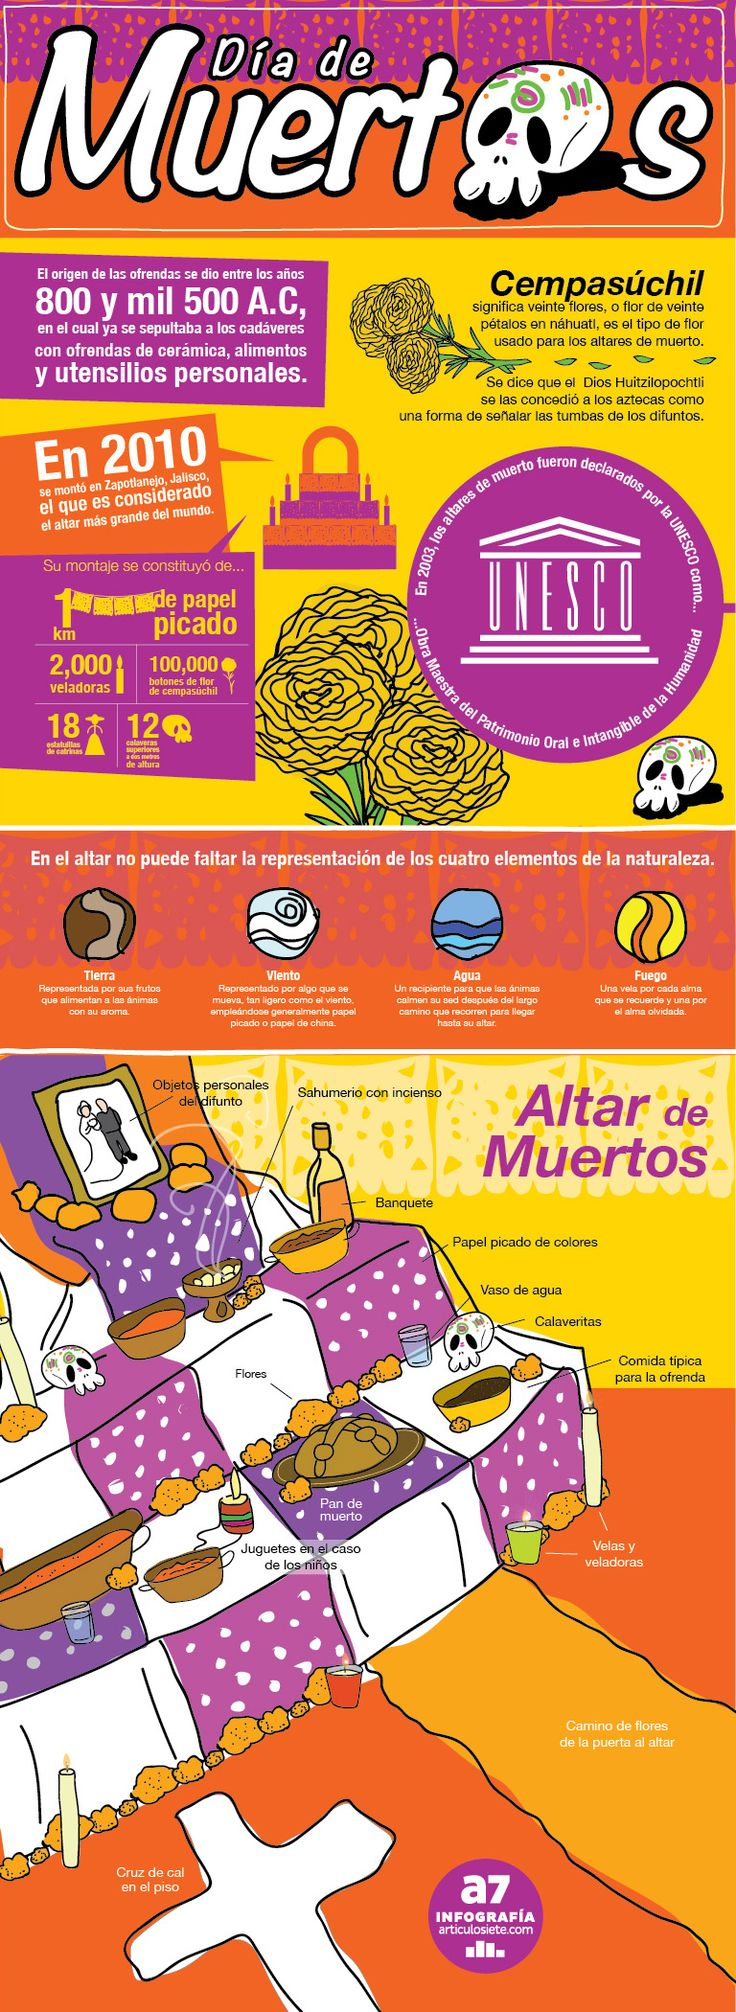 Another infographic in Spanish about Día de los Muertos.: